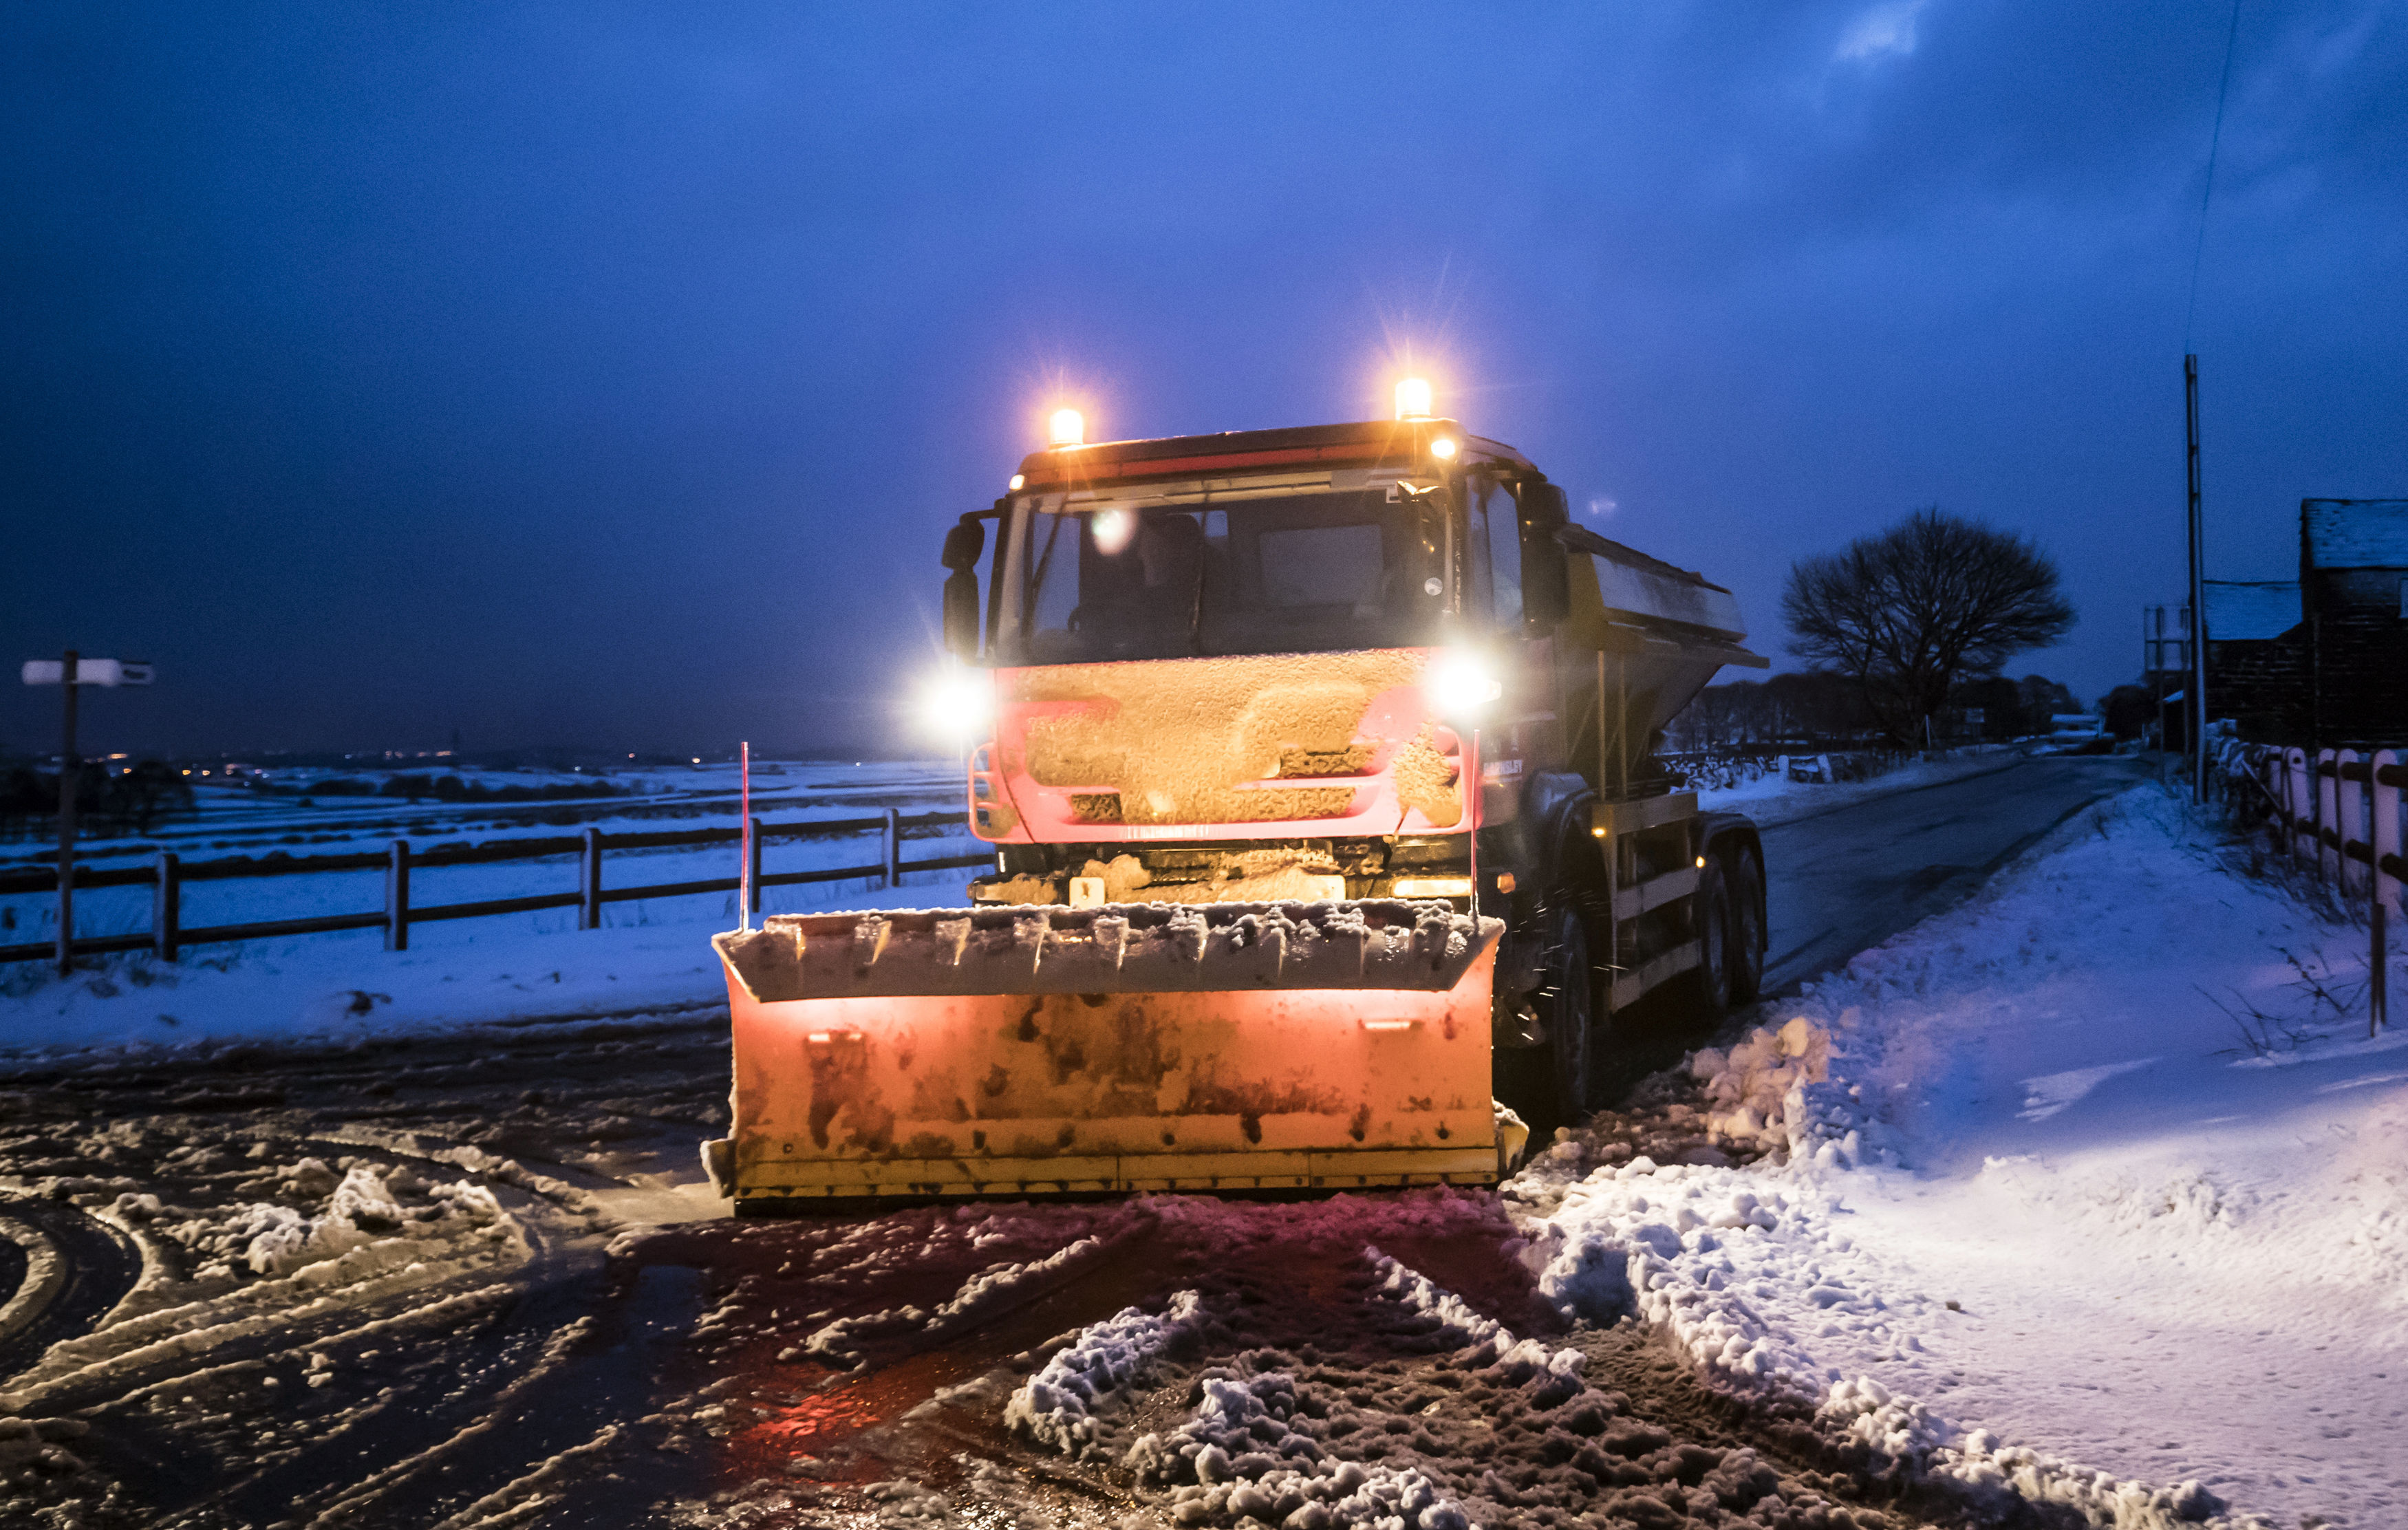 Offaly hit with fresh weather warning after night of snow and ice